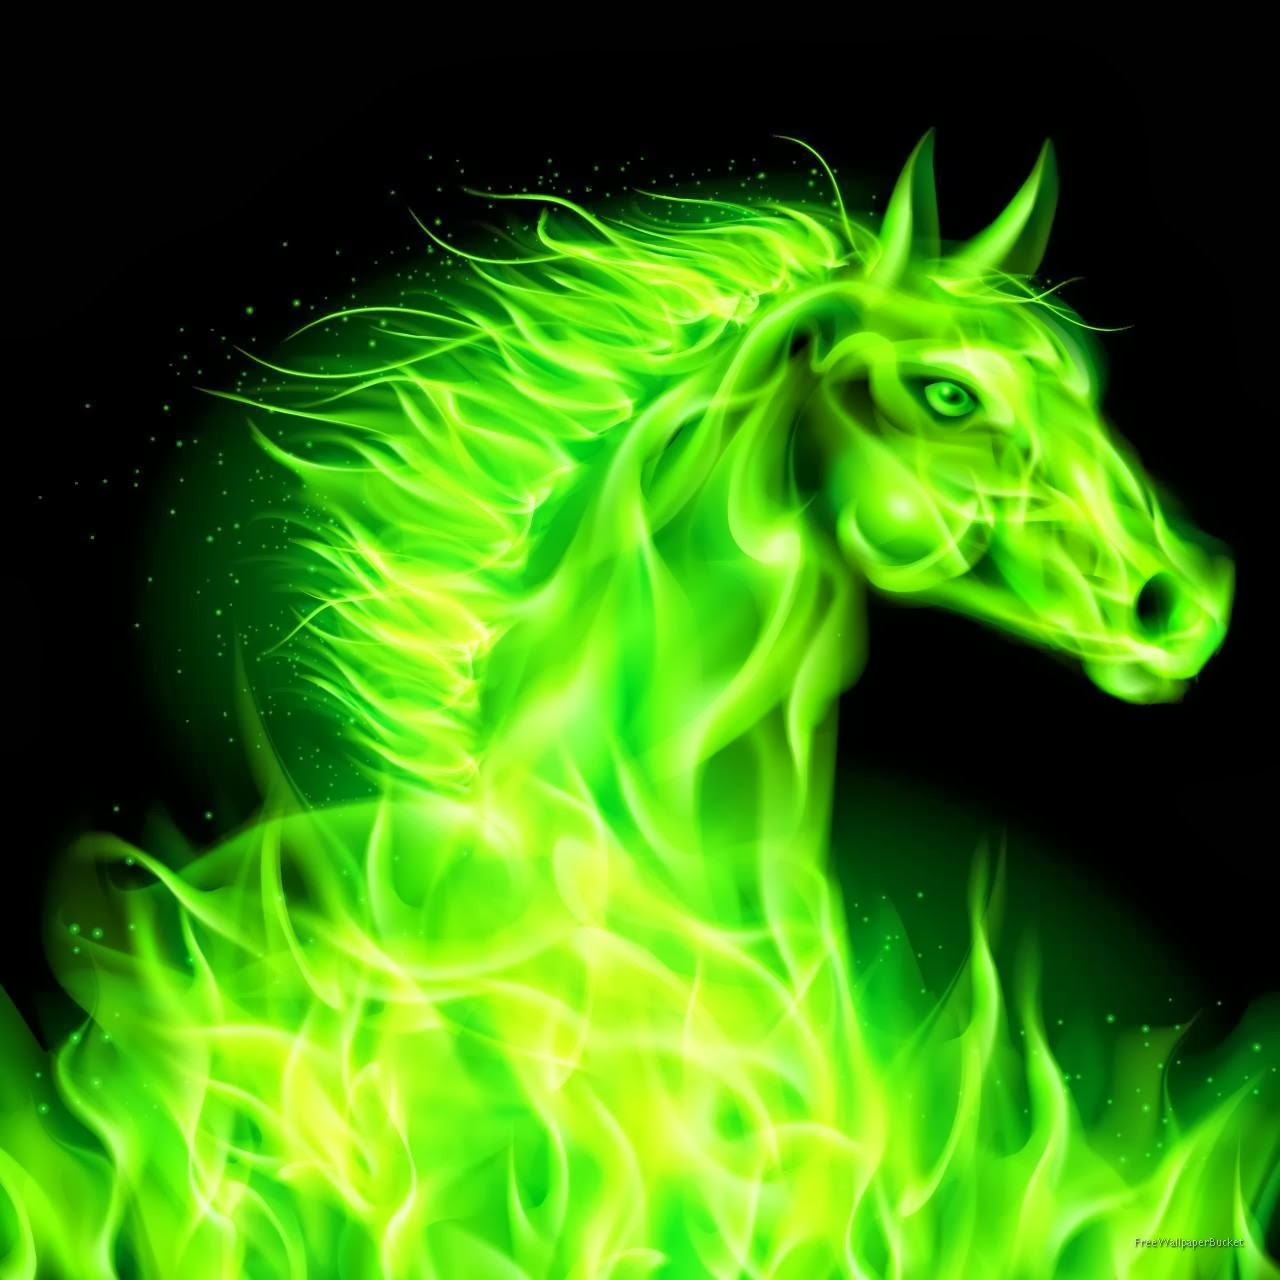 Green Fire Wallpaper Background All about anima...